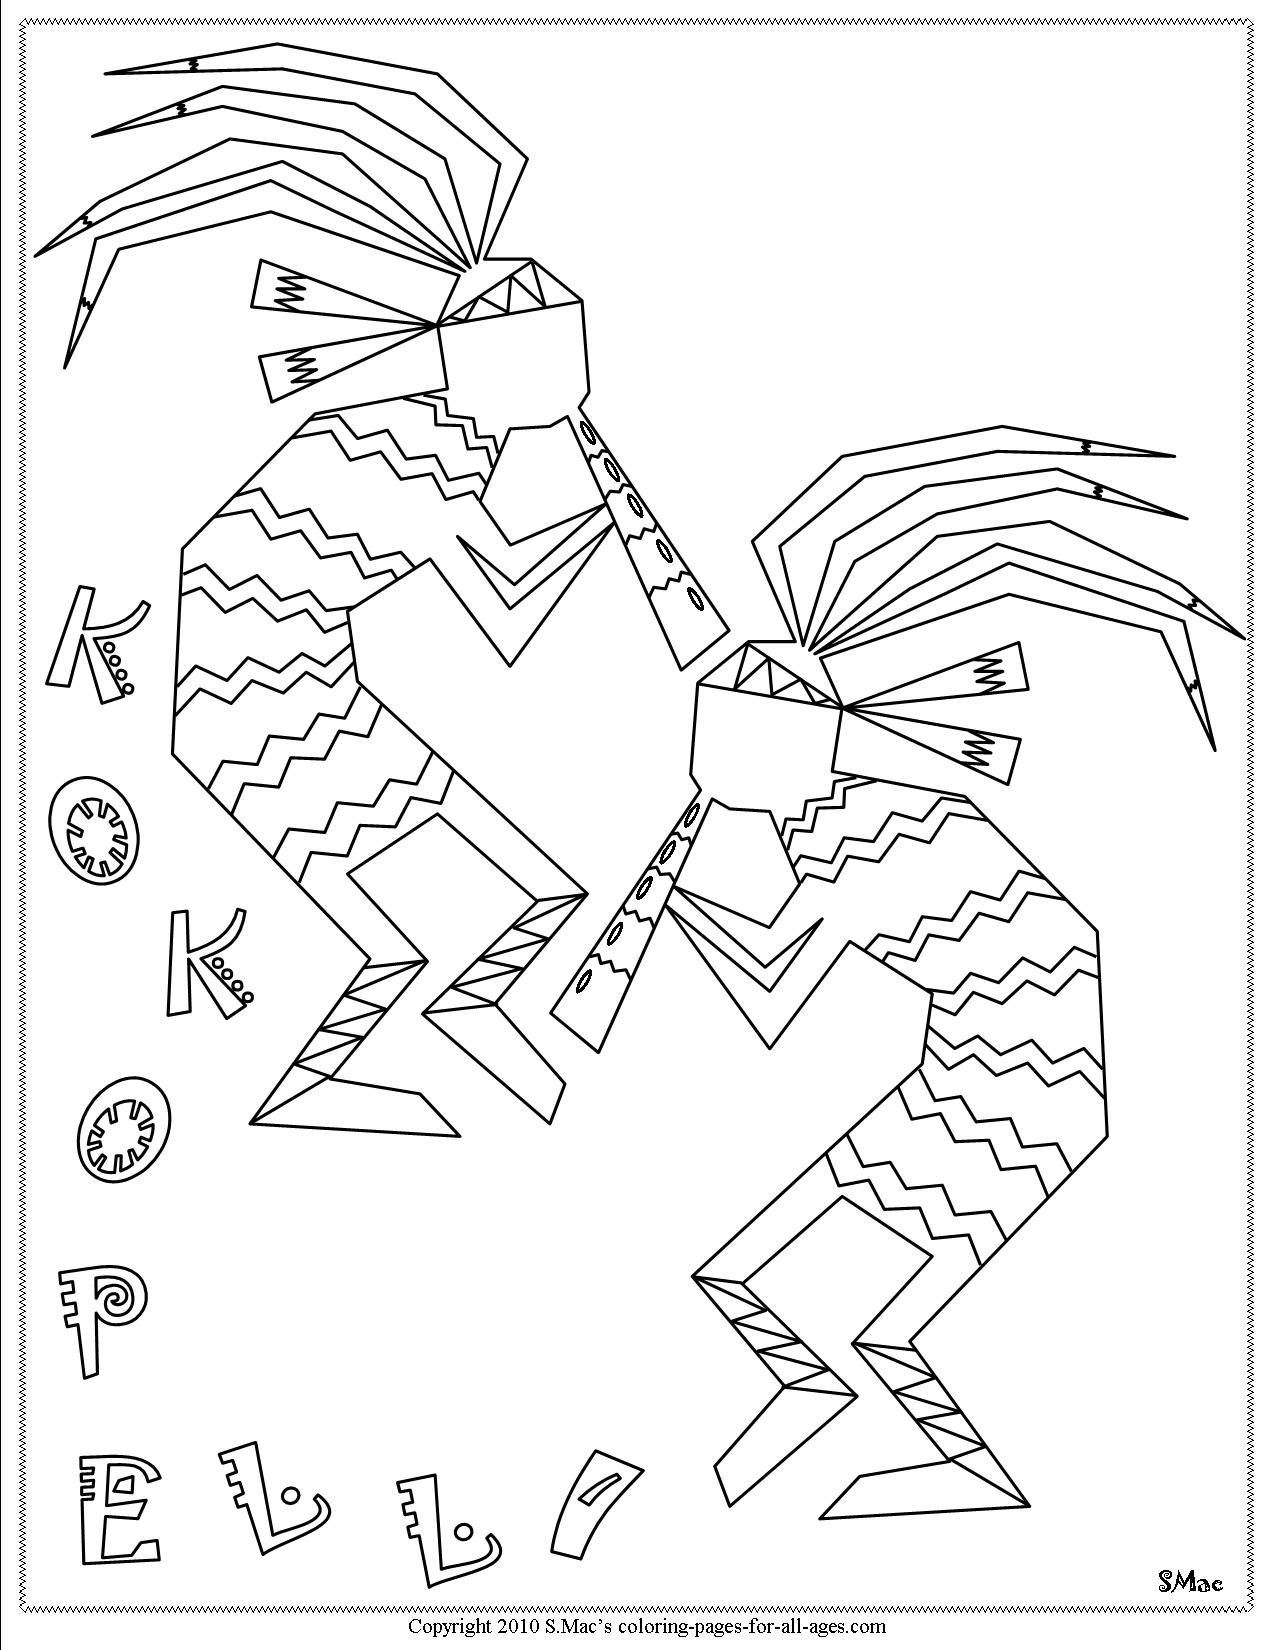 Kokopelli Coloring Pages Native American Symbols American Symbols Mandala Coloring Pages